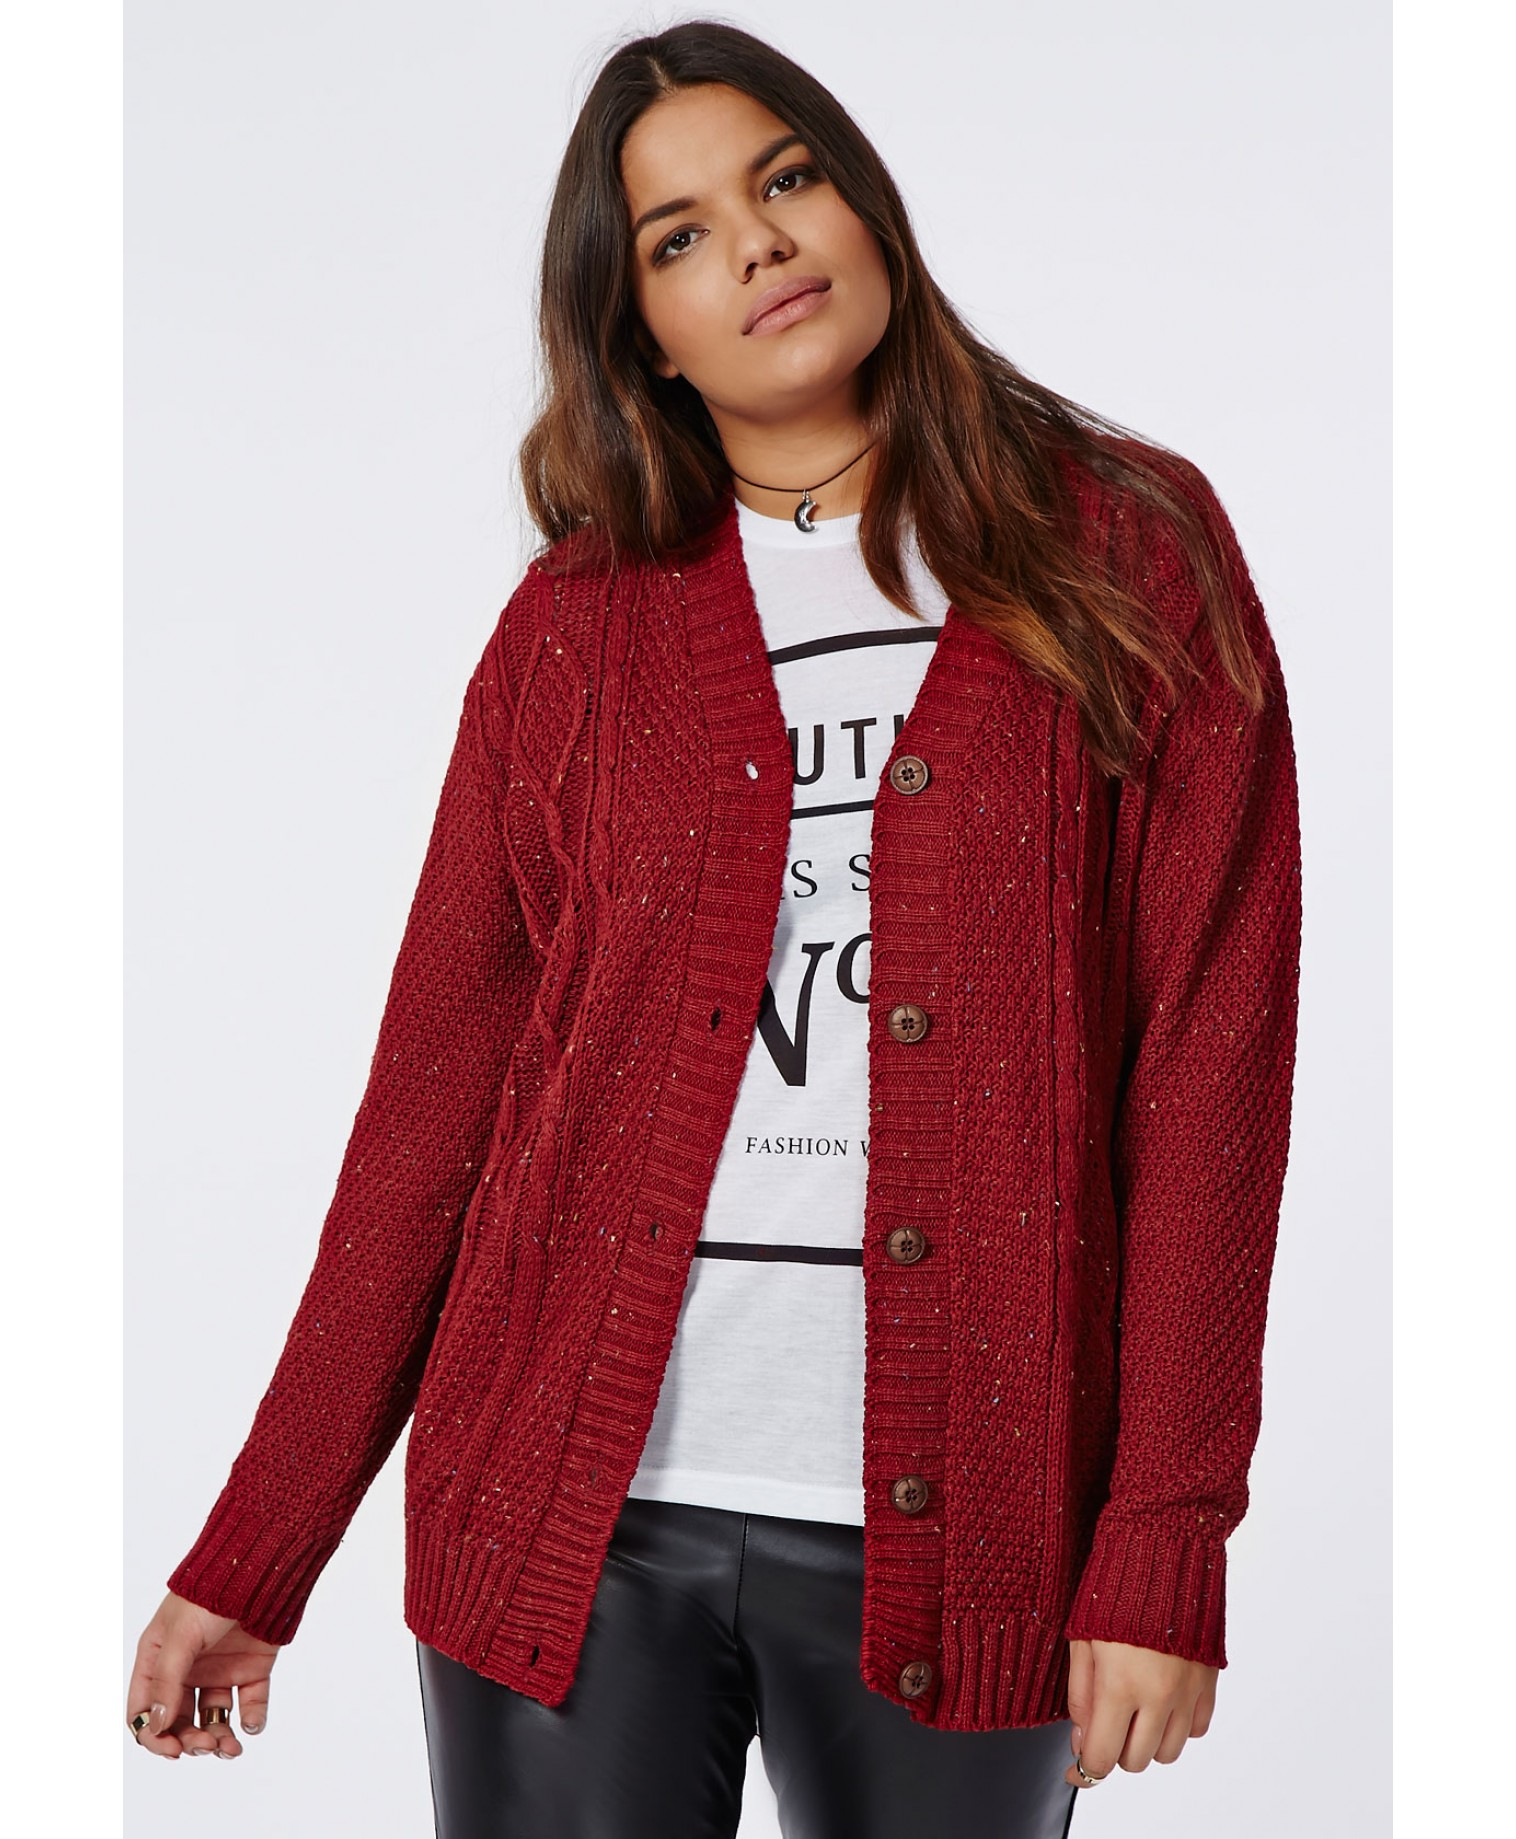 Shop for mossimo chunky cardigan online at Target. Free shipping on purchases over $35 and save 5% every day with your Target REDcard.